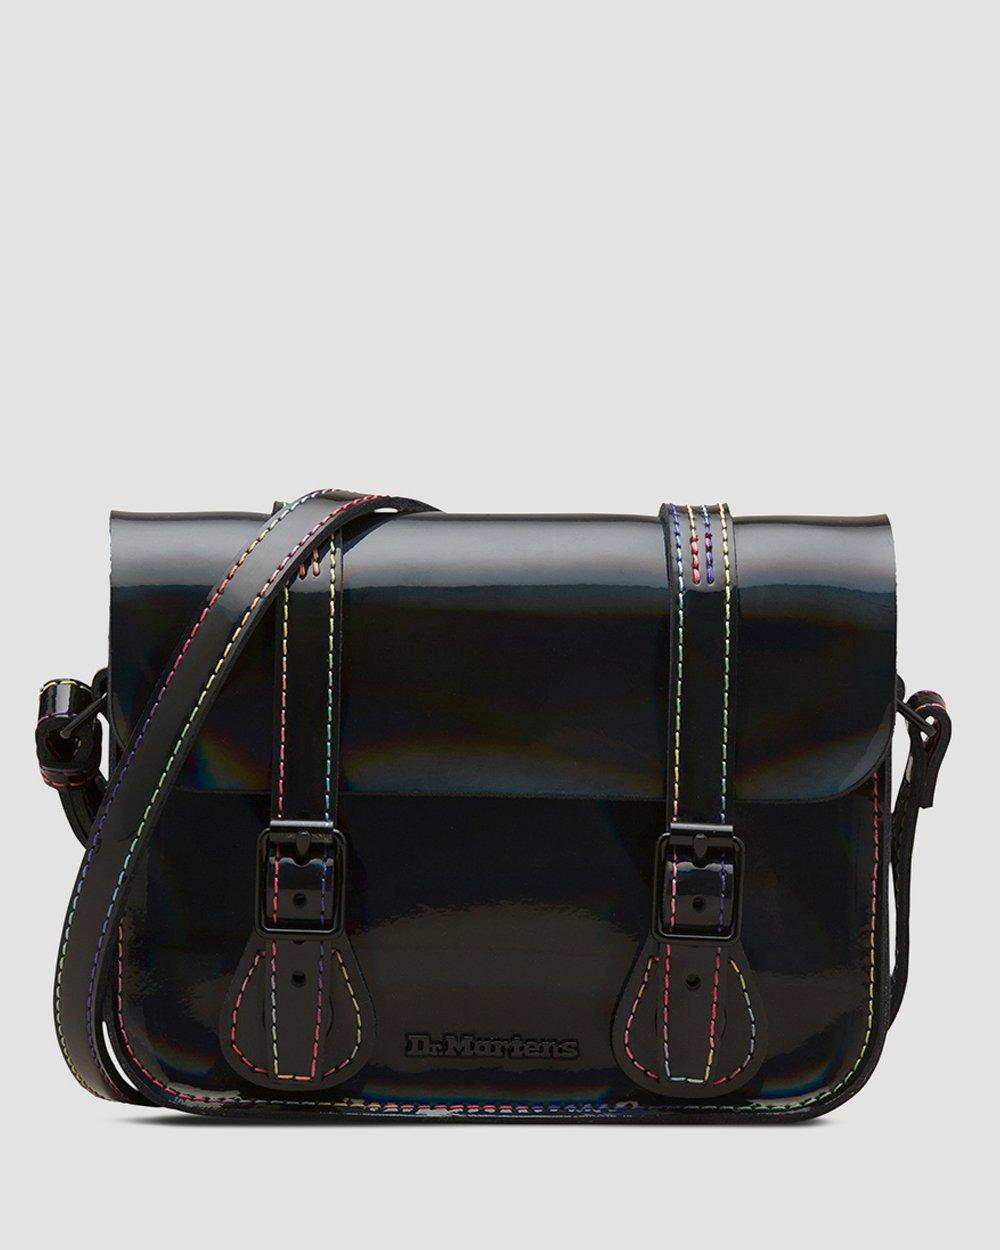 DR MARTENS 7 inch Rainbow Patent Leather Satchel